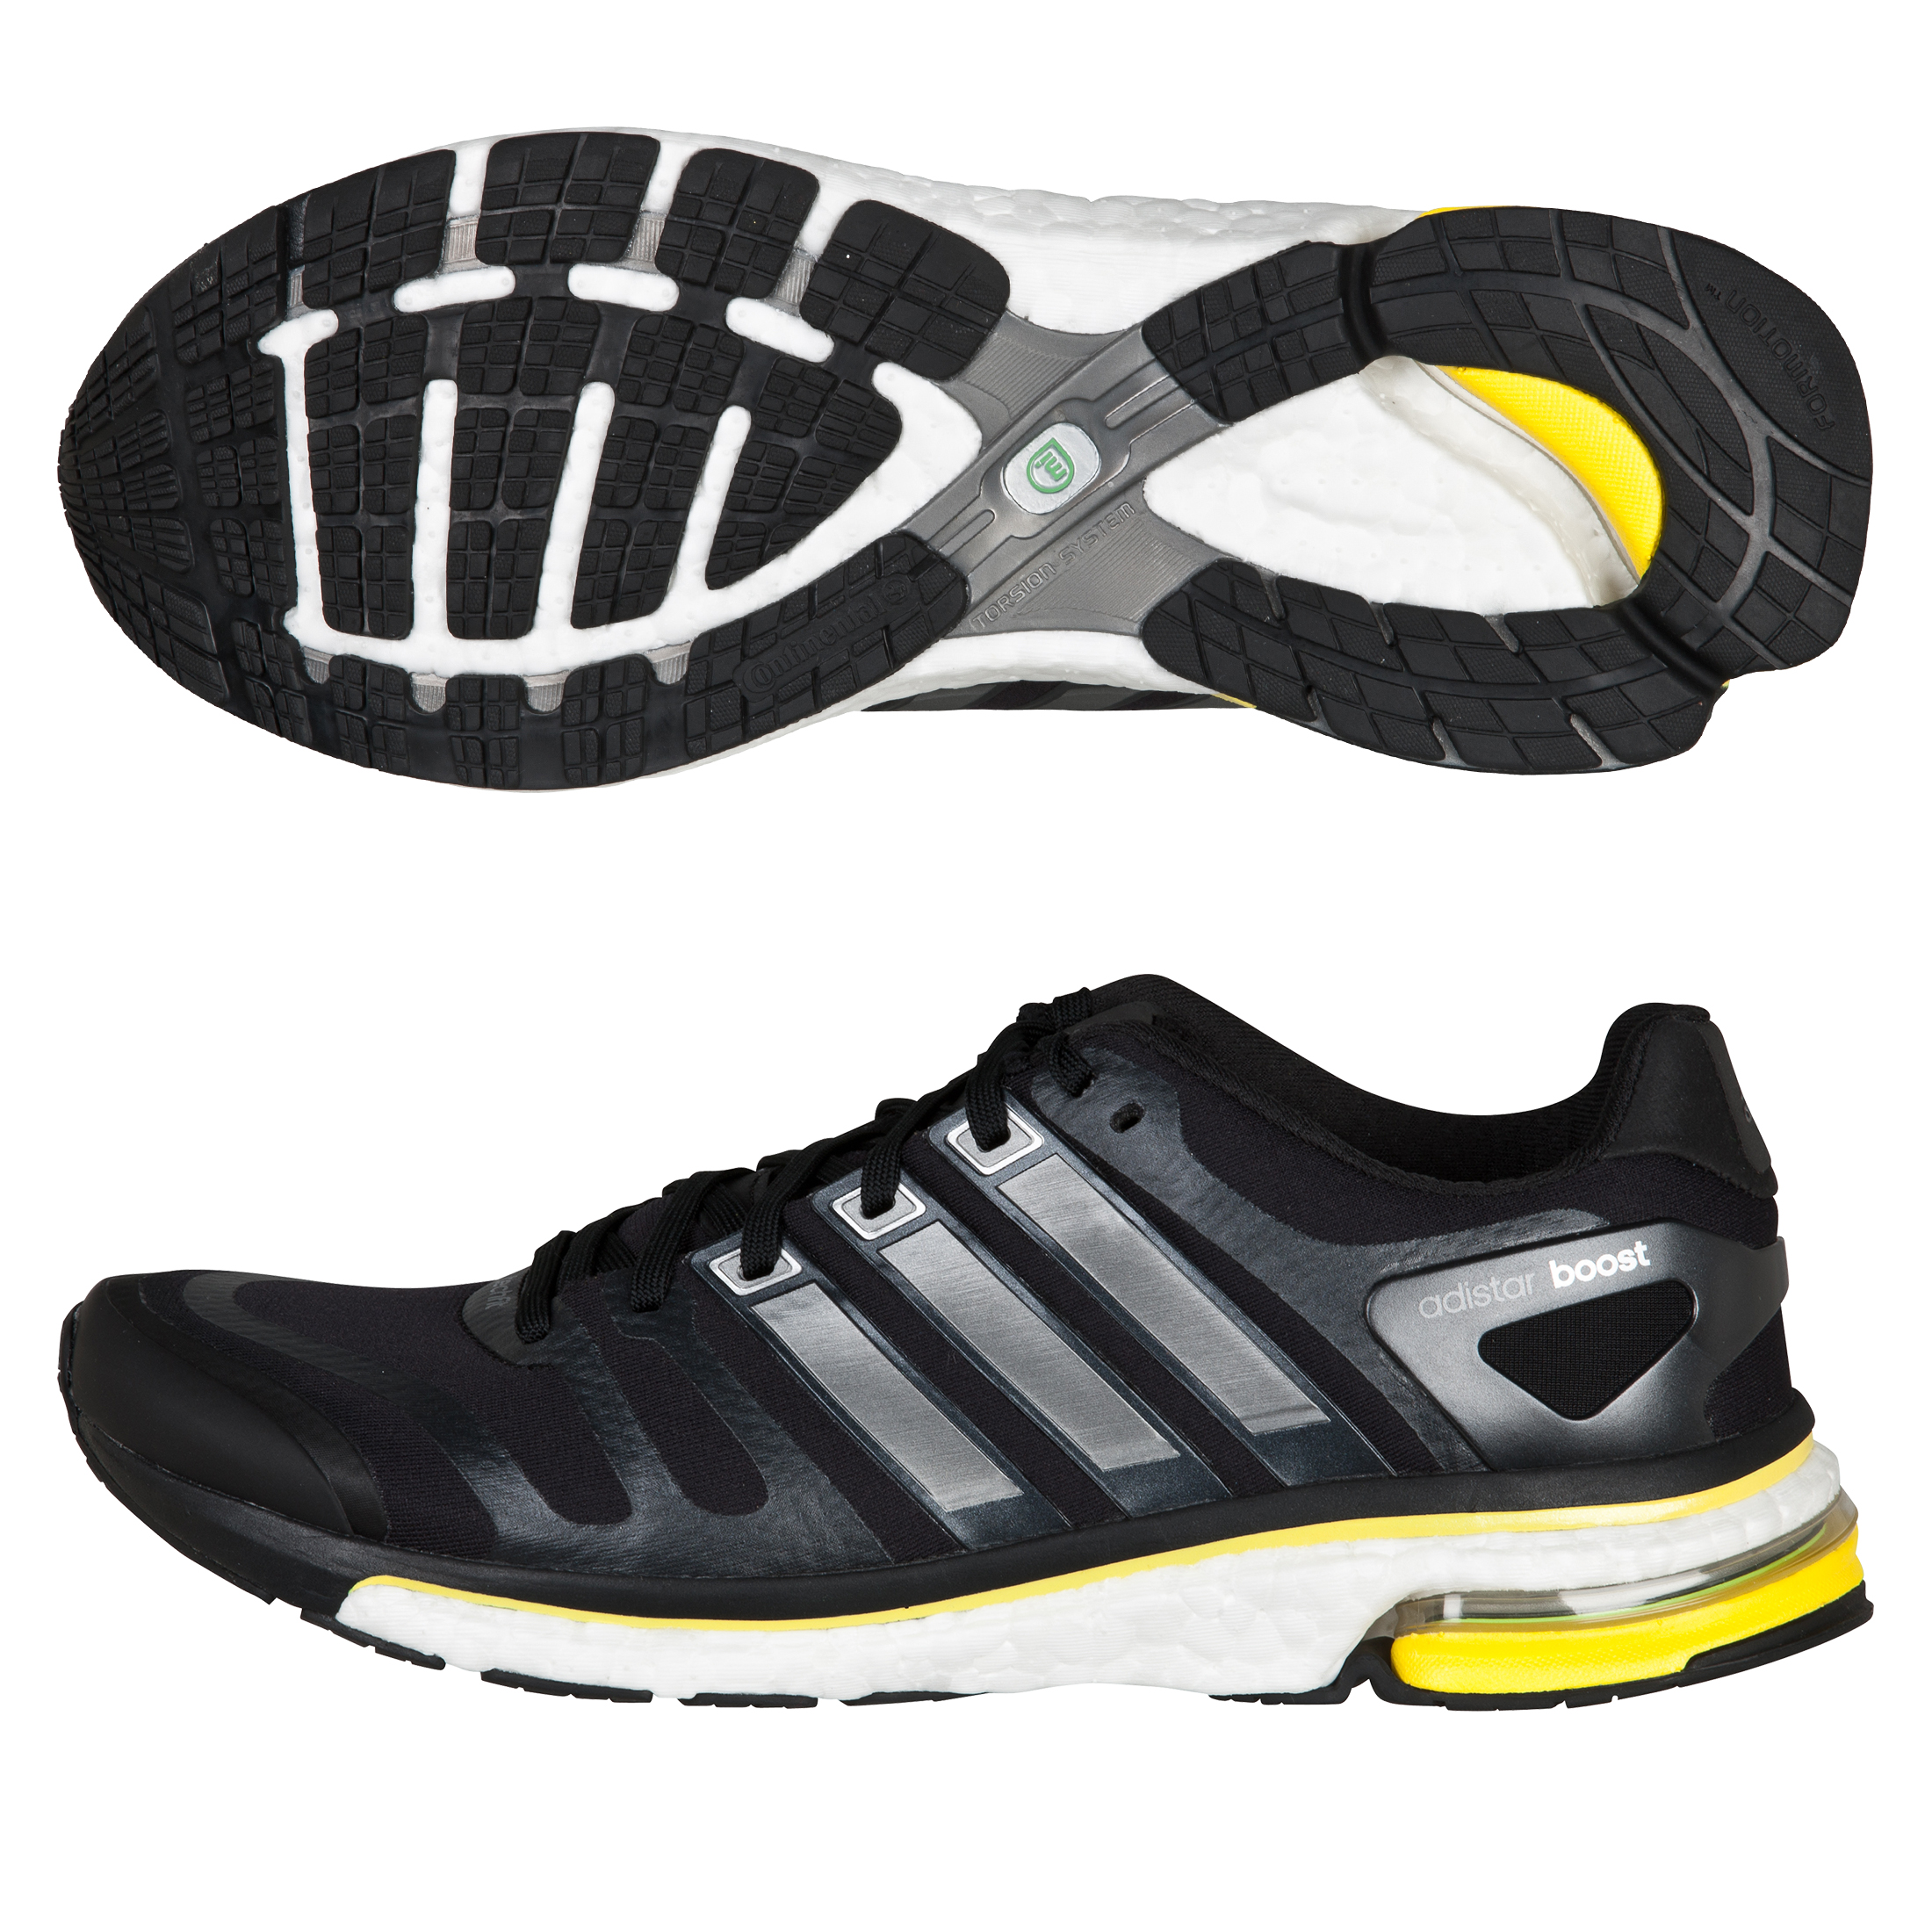 adidas Adistar Boost Running Trainers - Black/Neo Iron/Vivid Yellow